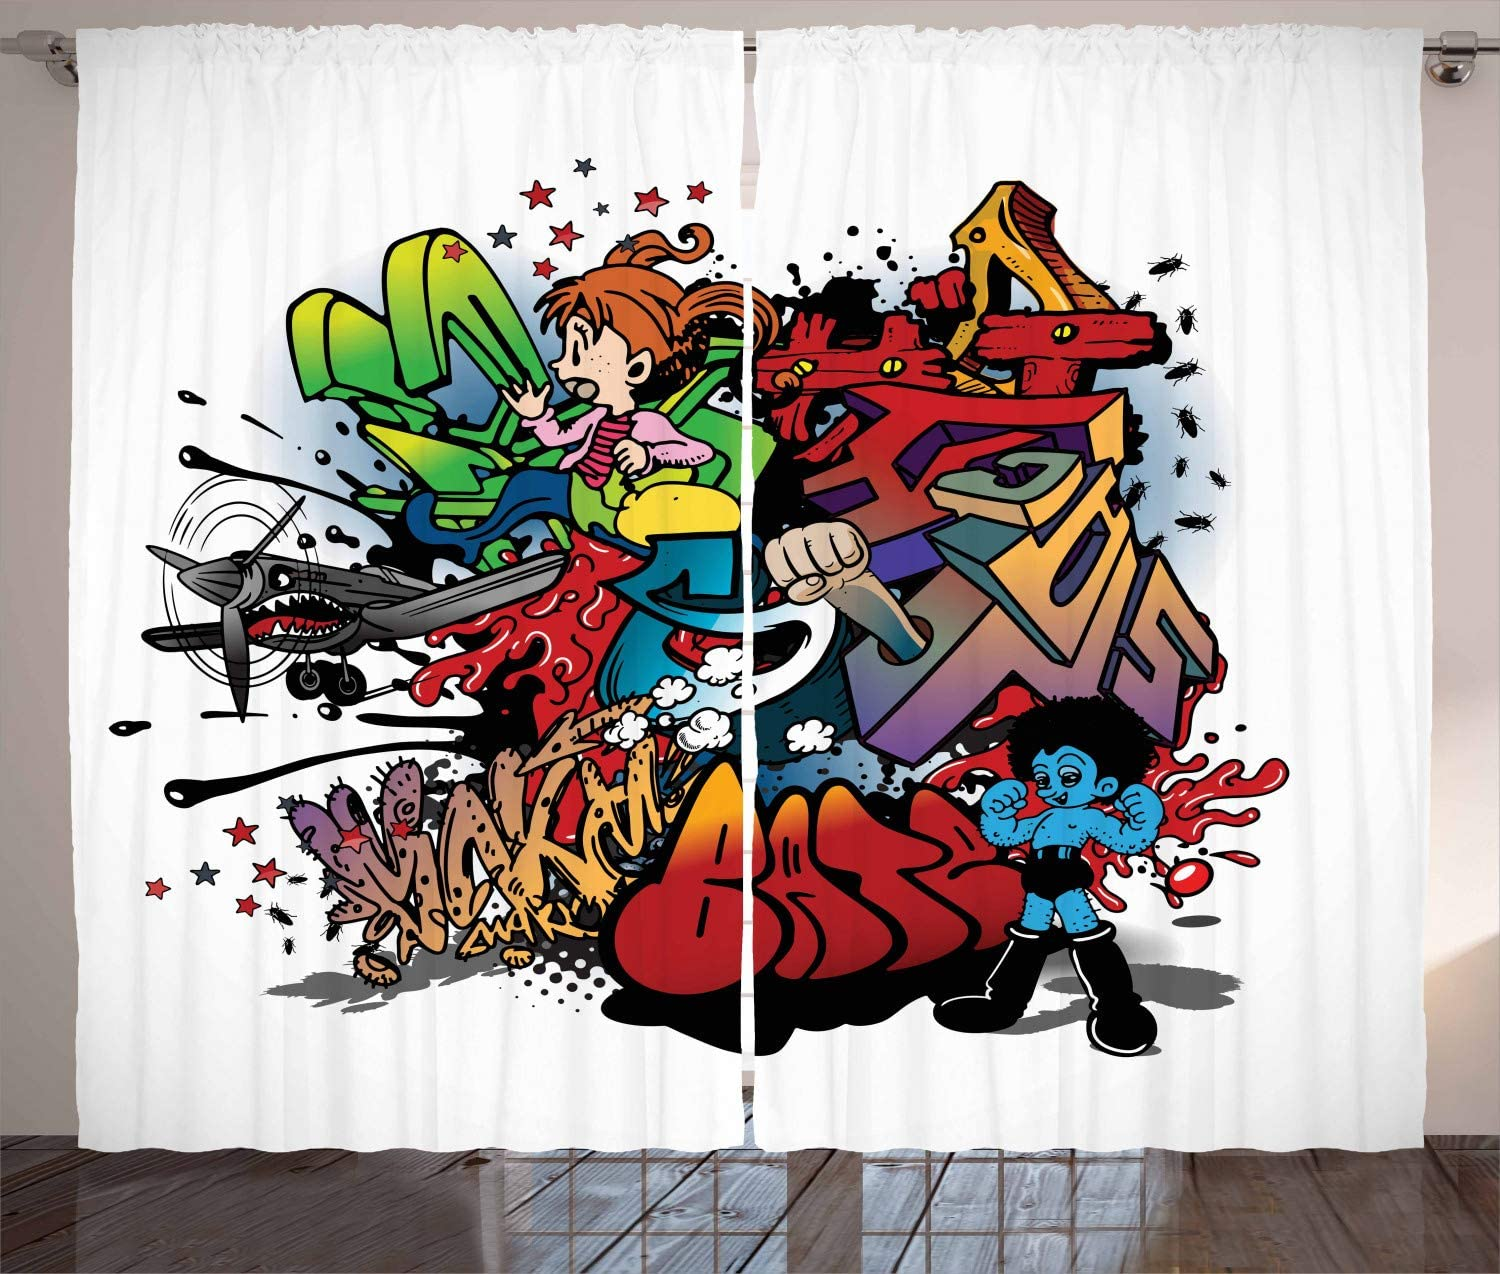 Lunarable Art Curtains Graffiti Urban Street Designs Colorful Composition Of Abstract Slogans Living Room Bedroom Window Drapes 2 Panel Set 108 X 63 Multicolor Home Kitchen Amazon Com